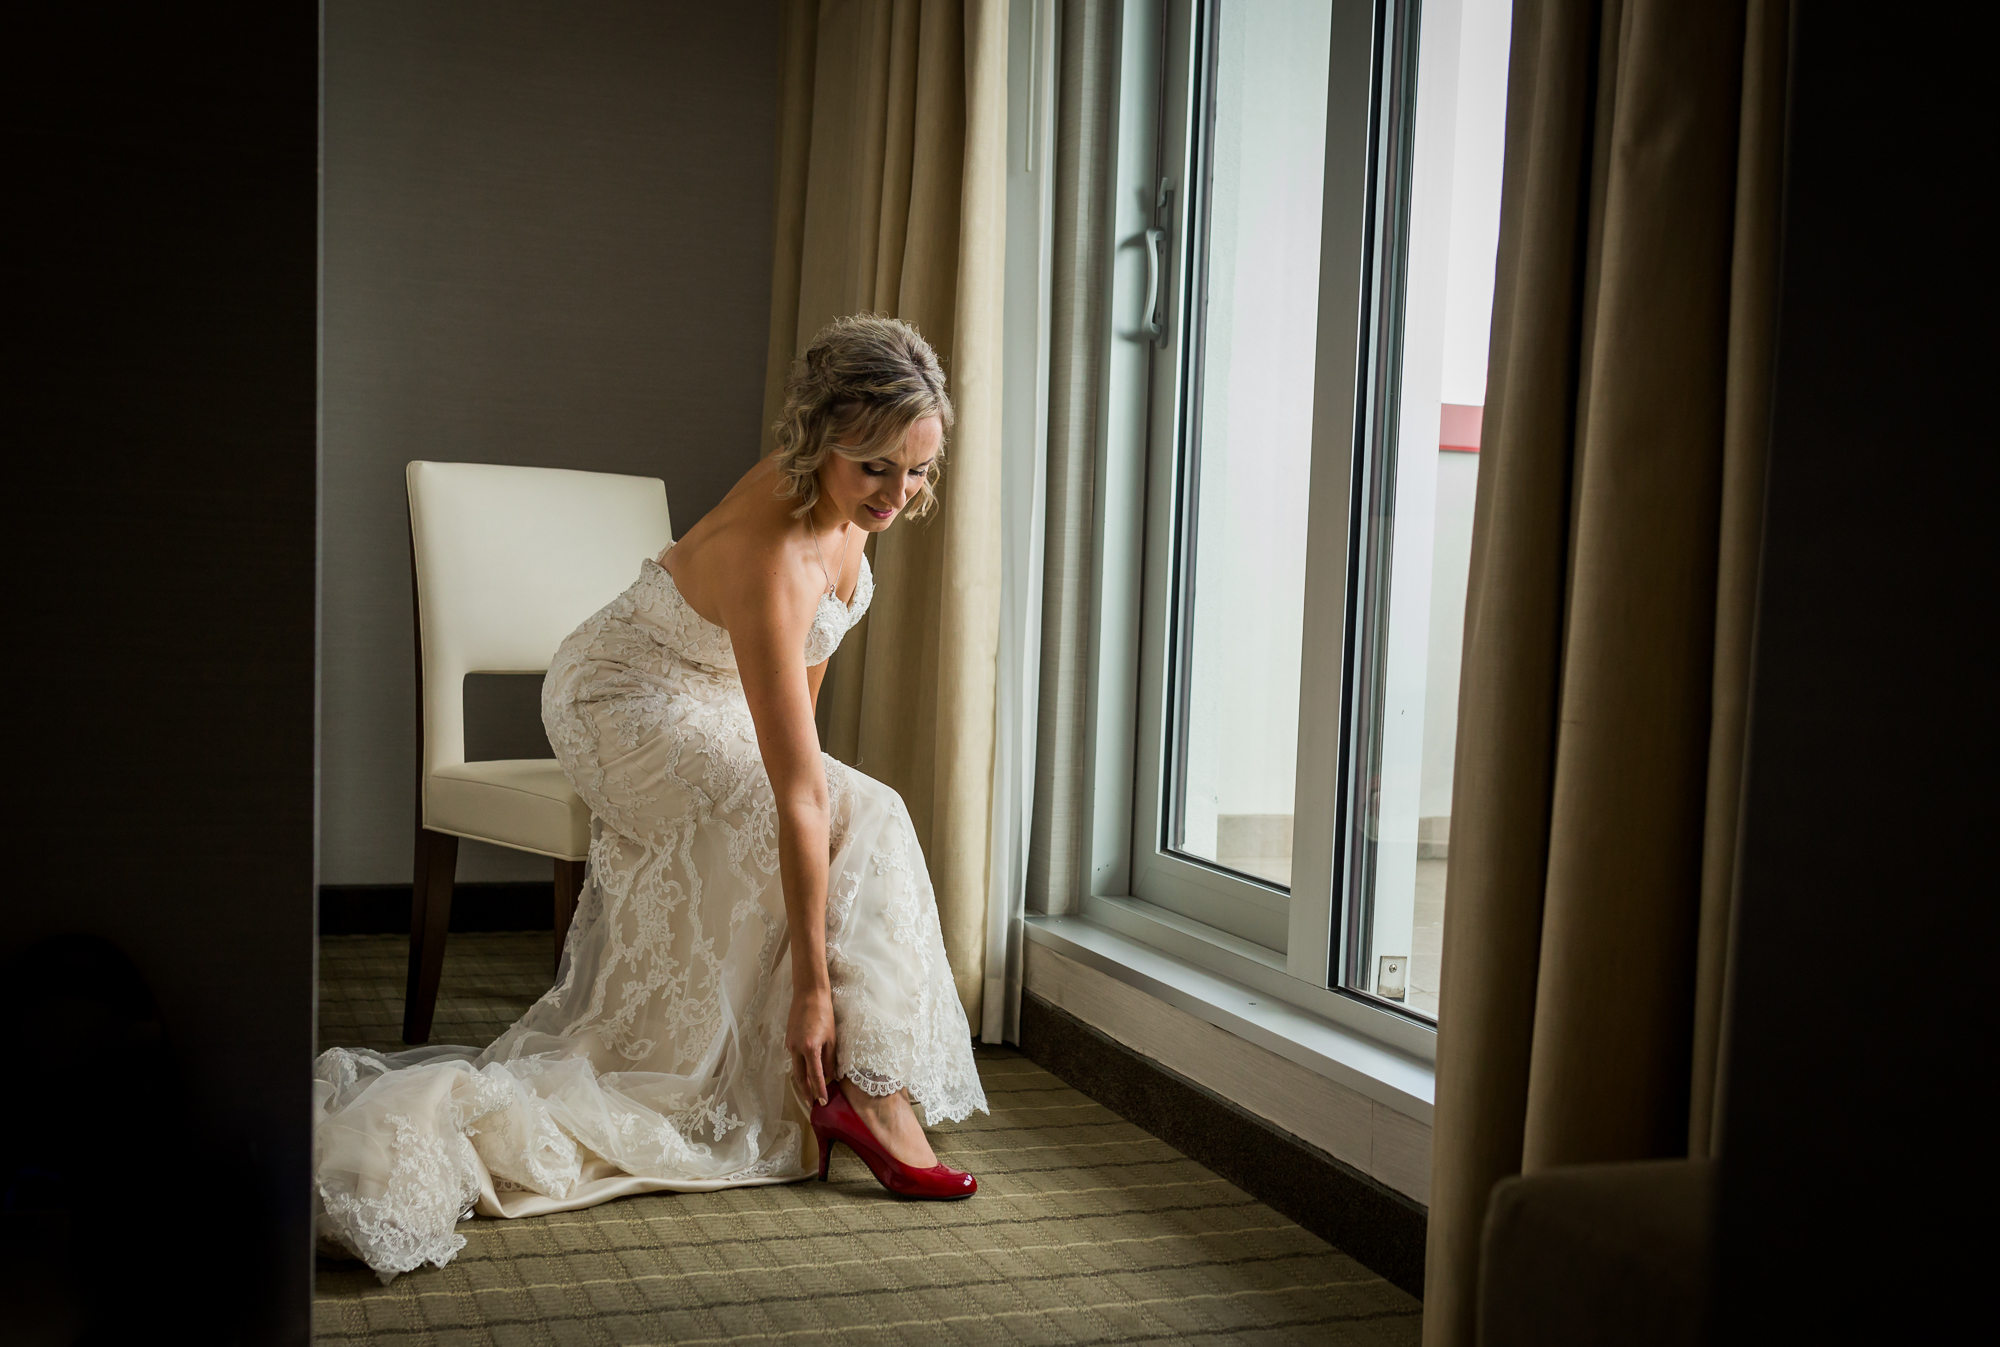 moncton wedding  photographer Tara Geldart-59.JPG